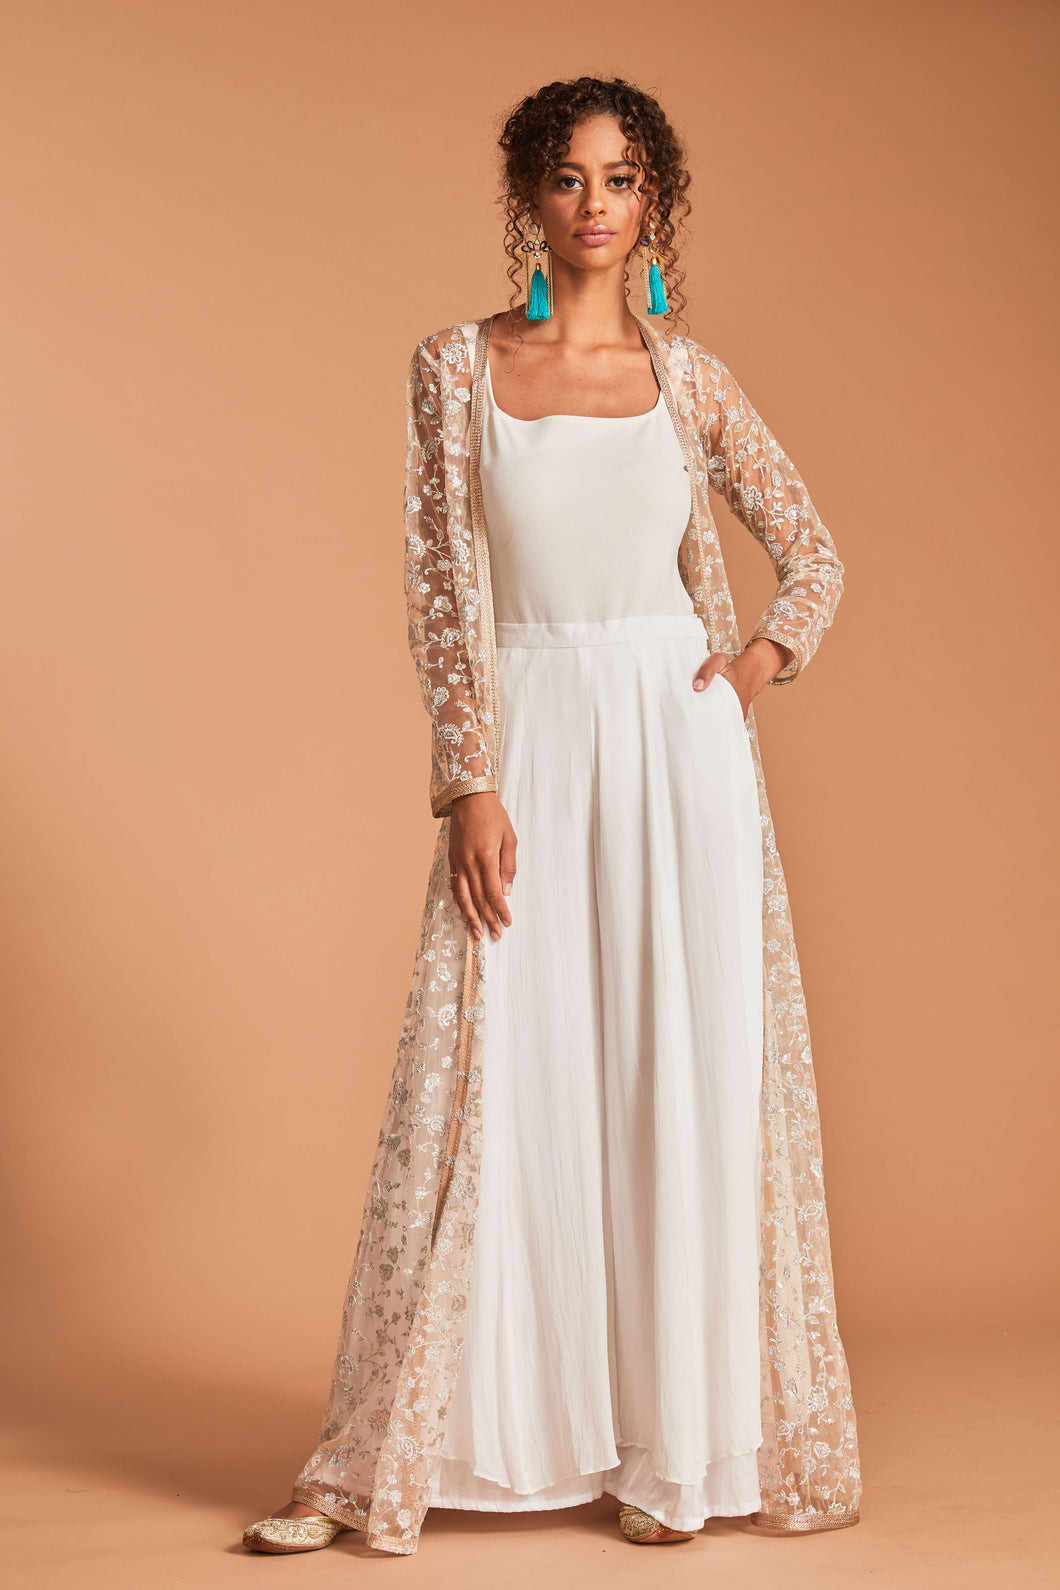 Nude pink cape with silver embroidery and palazzo pants